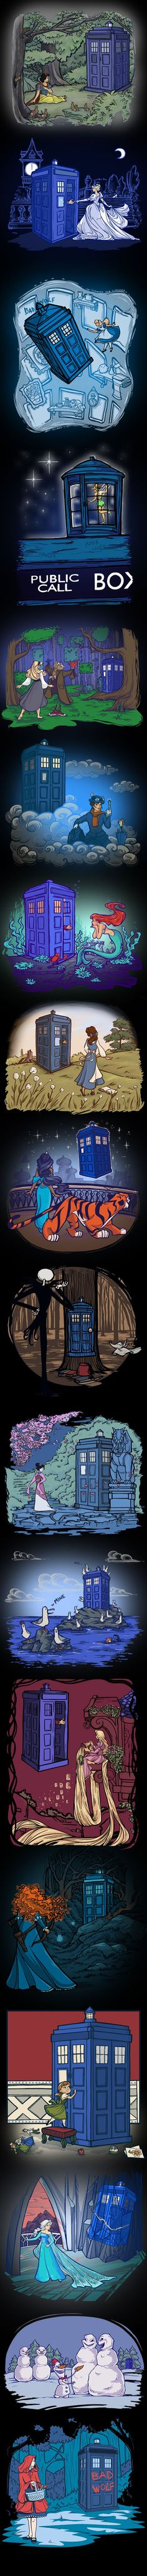 Disney meets the Tardis